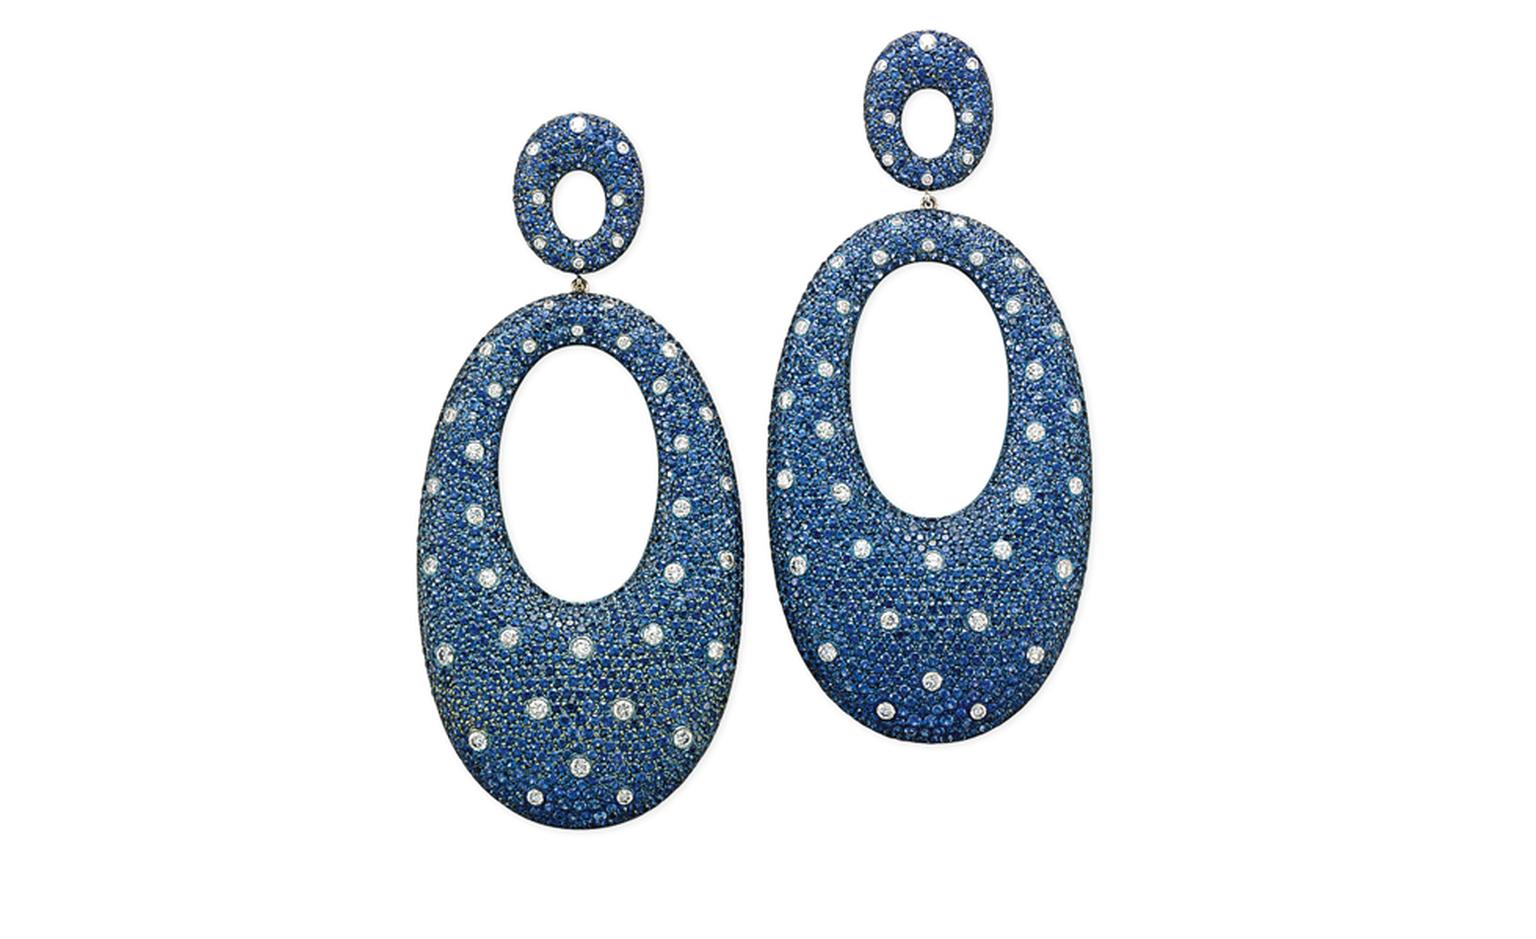 Lot 28. A pair of sapphire, diamond and titanium ear pendants. Each ear pendant designed as an oval titanium hoop mounted with pavé-set circular-shaped sapphires interspersed with brilliant-cut diamond collets of 'polka dot' motif suspended from...